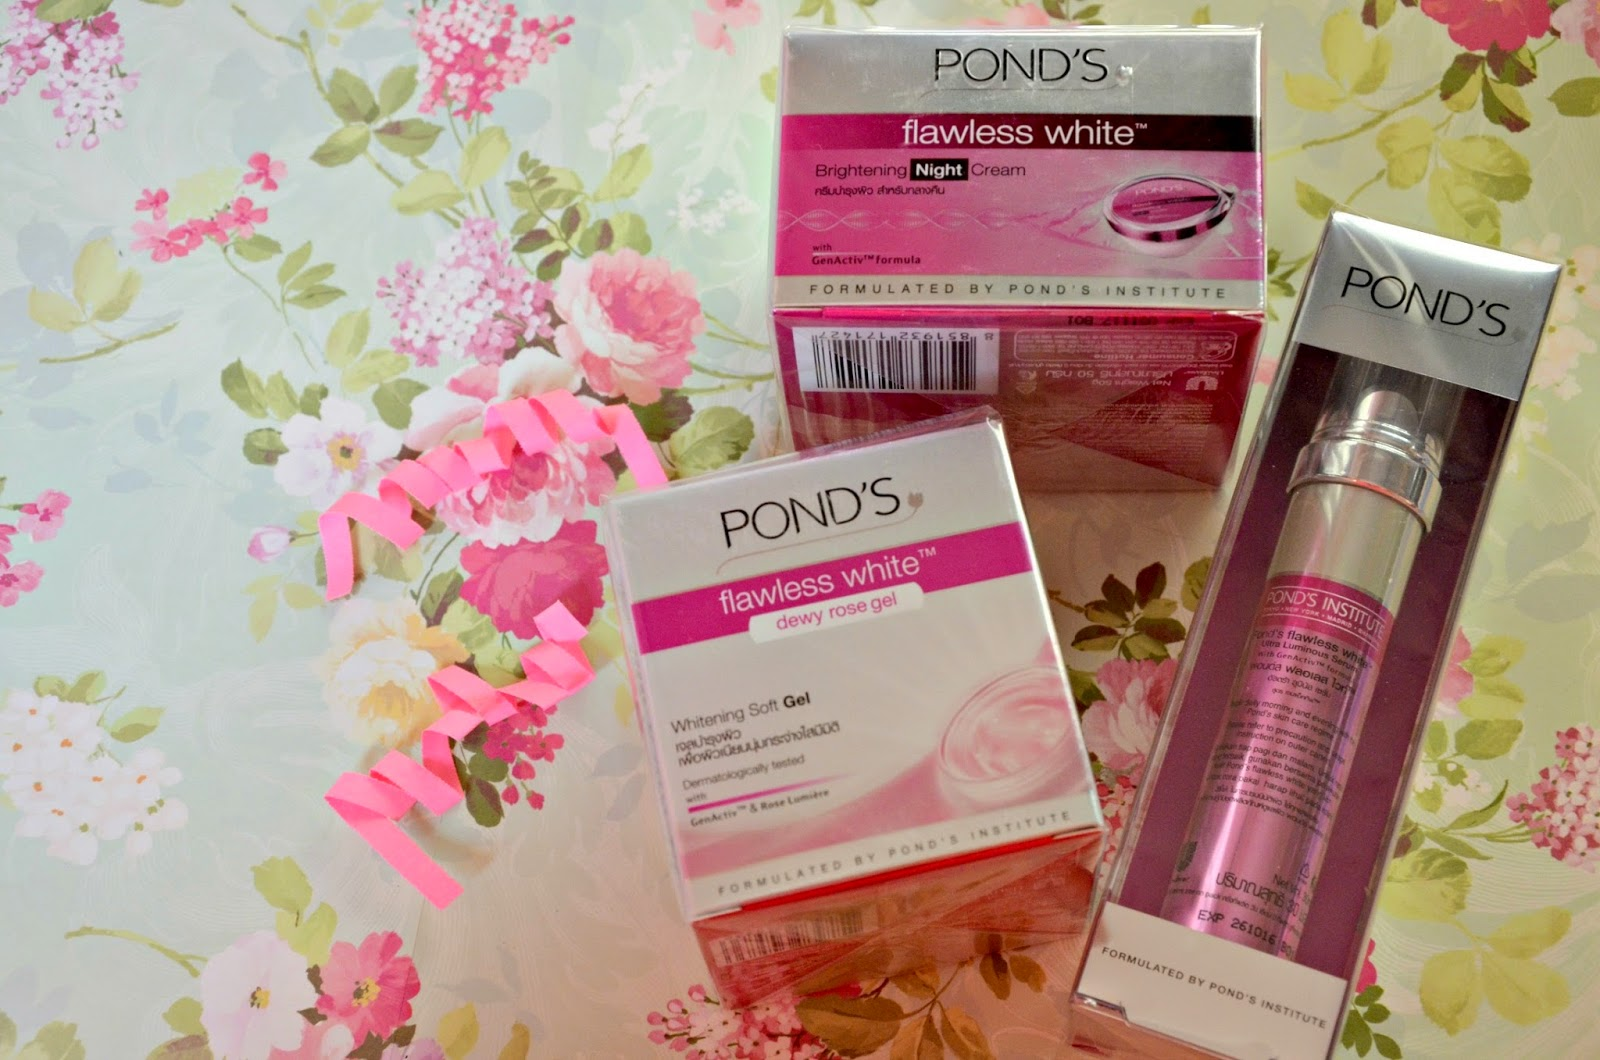 Unboxing The March 2015 Ponds Exclusive Bdj Box A Day In Life Flawless Dewy Rose Gel 50 G White Ultra Luminous Serum 30ml Php480 Worrying About Uneven Skin Tone Caused By Exposure To Sunlight And Pollution